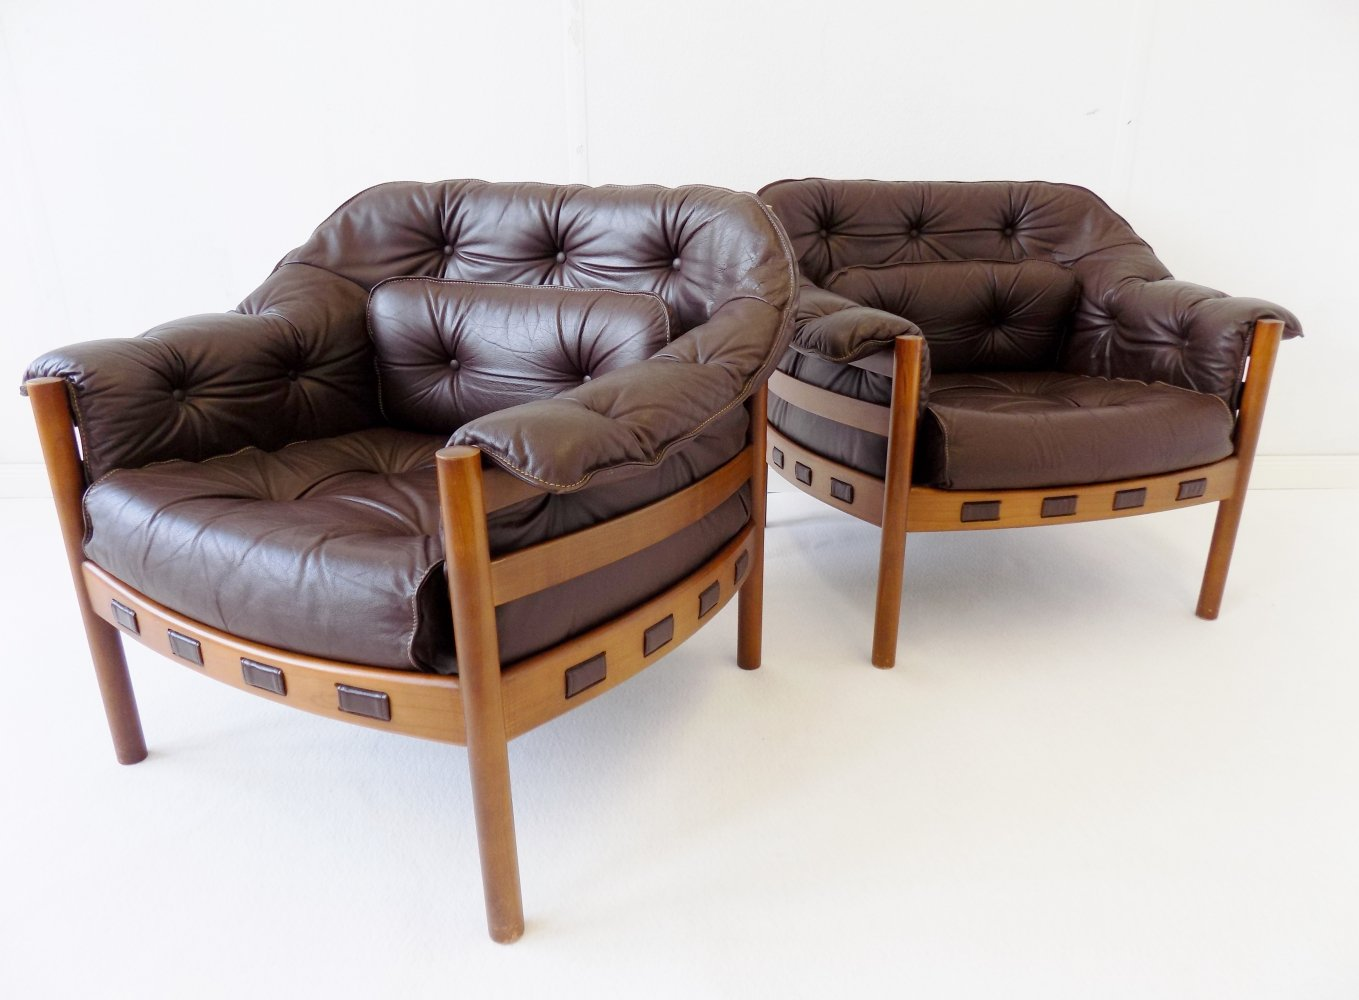 Sven Ellekaer set of 2 brown leather armchairs for Coja